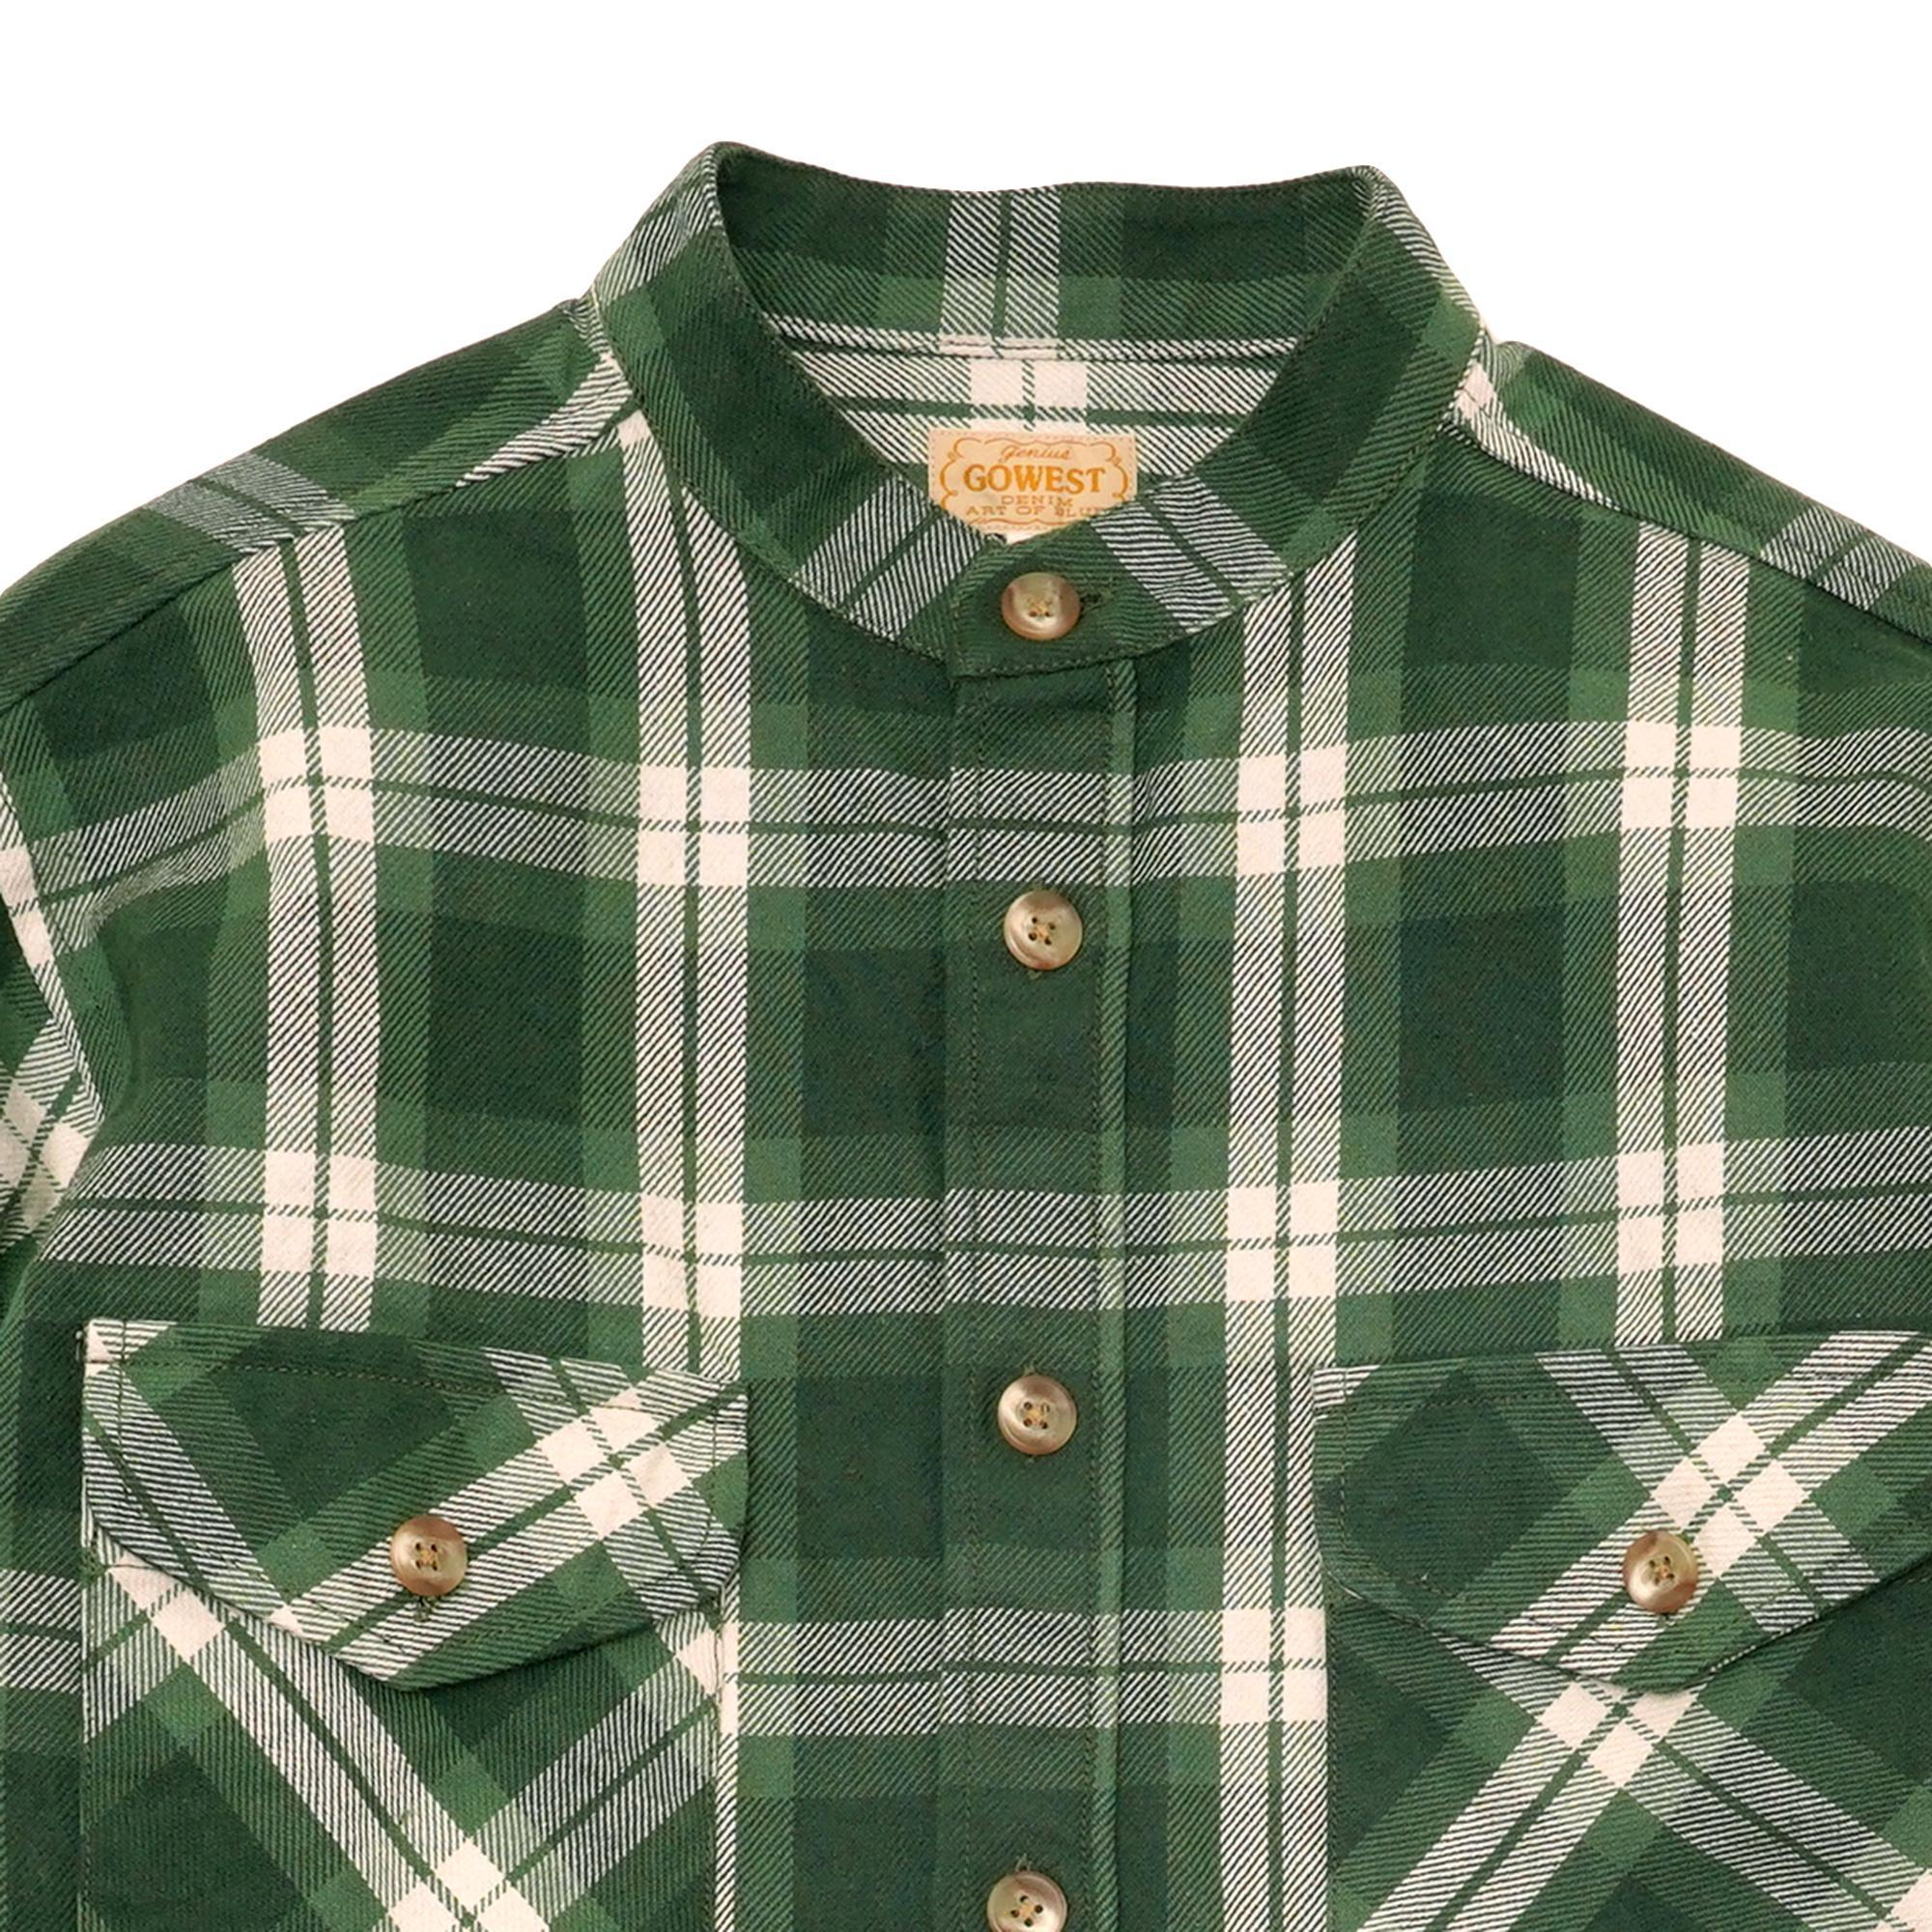 BAND ON THE SHIRTS/HEAVY COTTON FLANNEL CLOTH